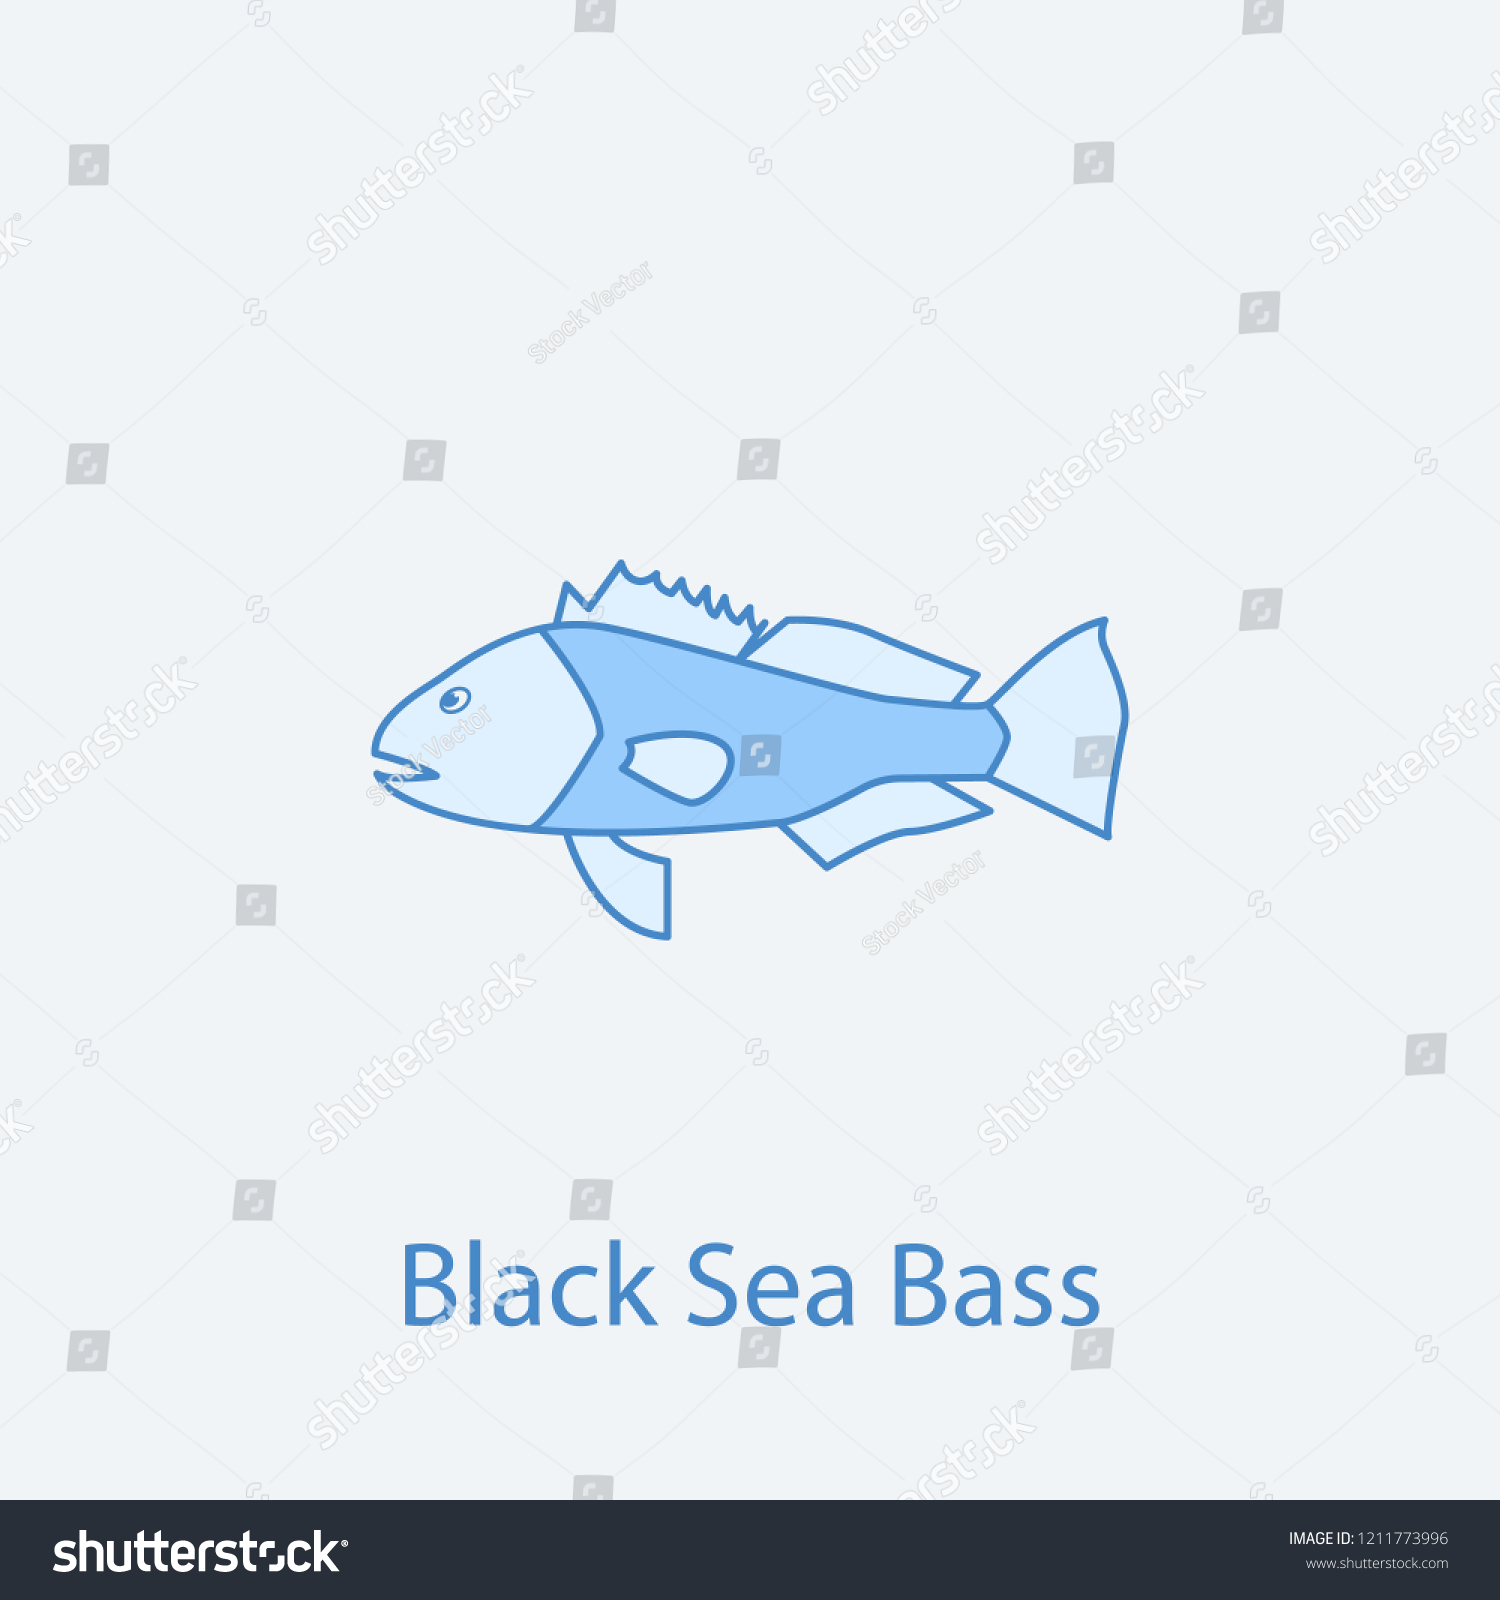 hight resolution of black sea bass 2 colored line icon simple light and dark blue element illustration